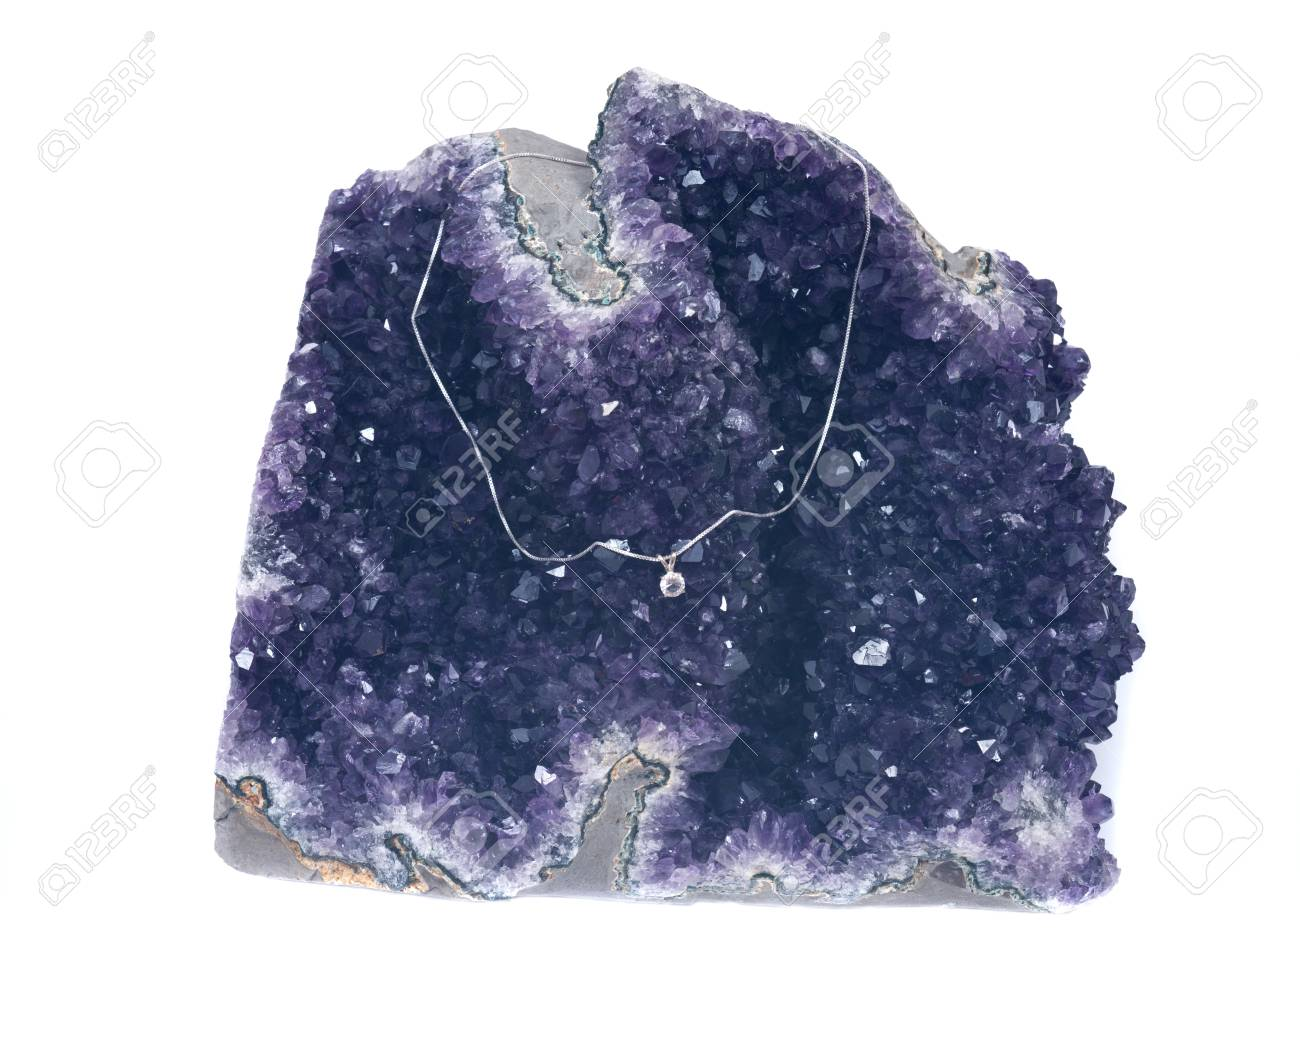 Crystal pendant on silver chain presented on amethyst geode isolated